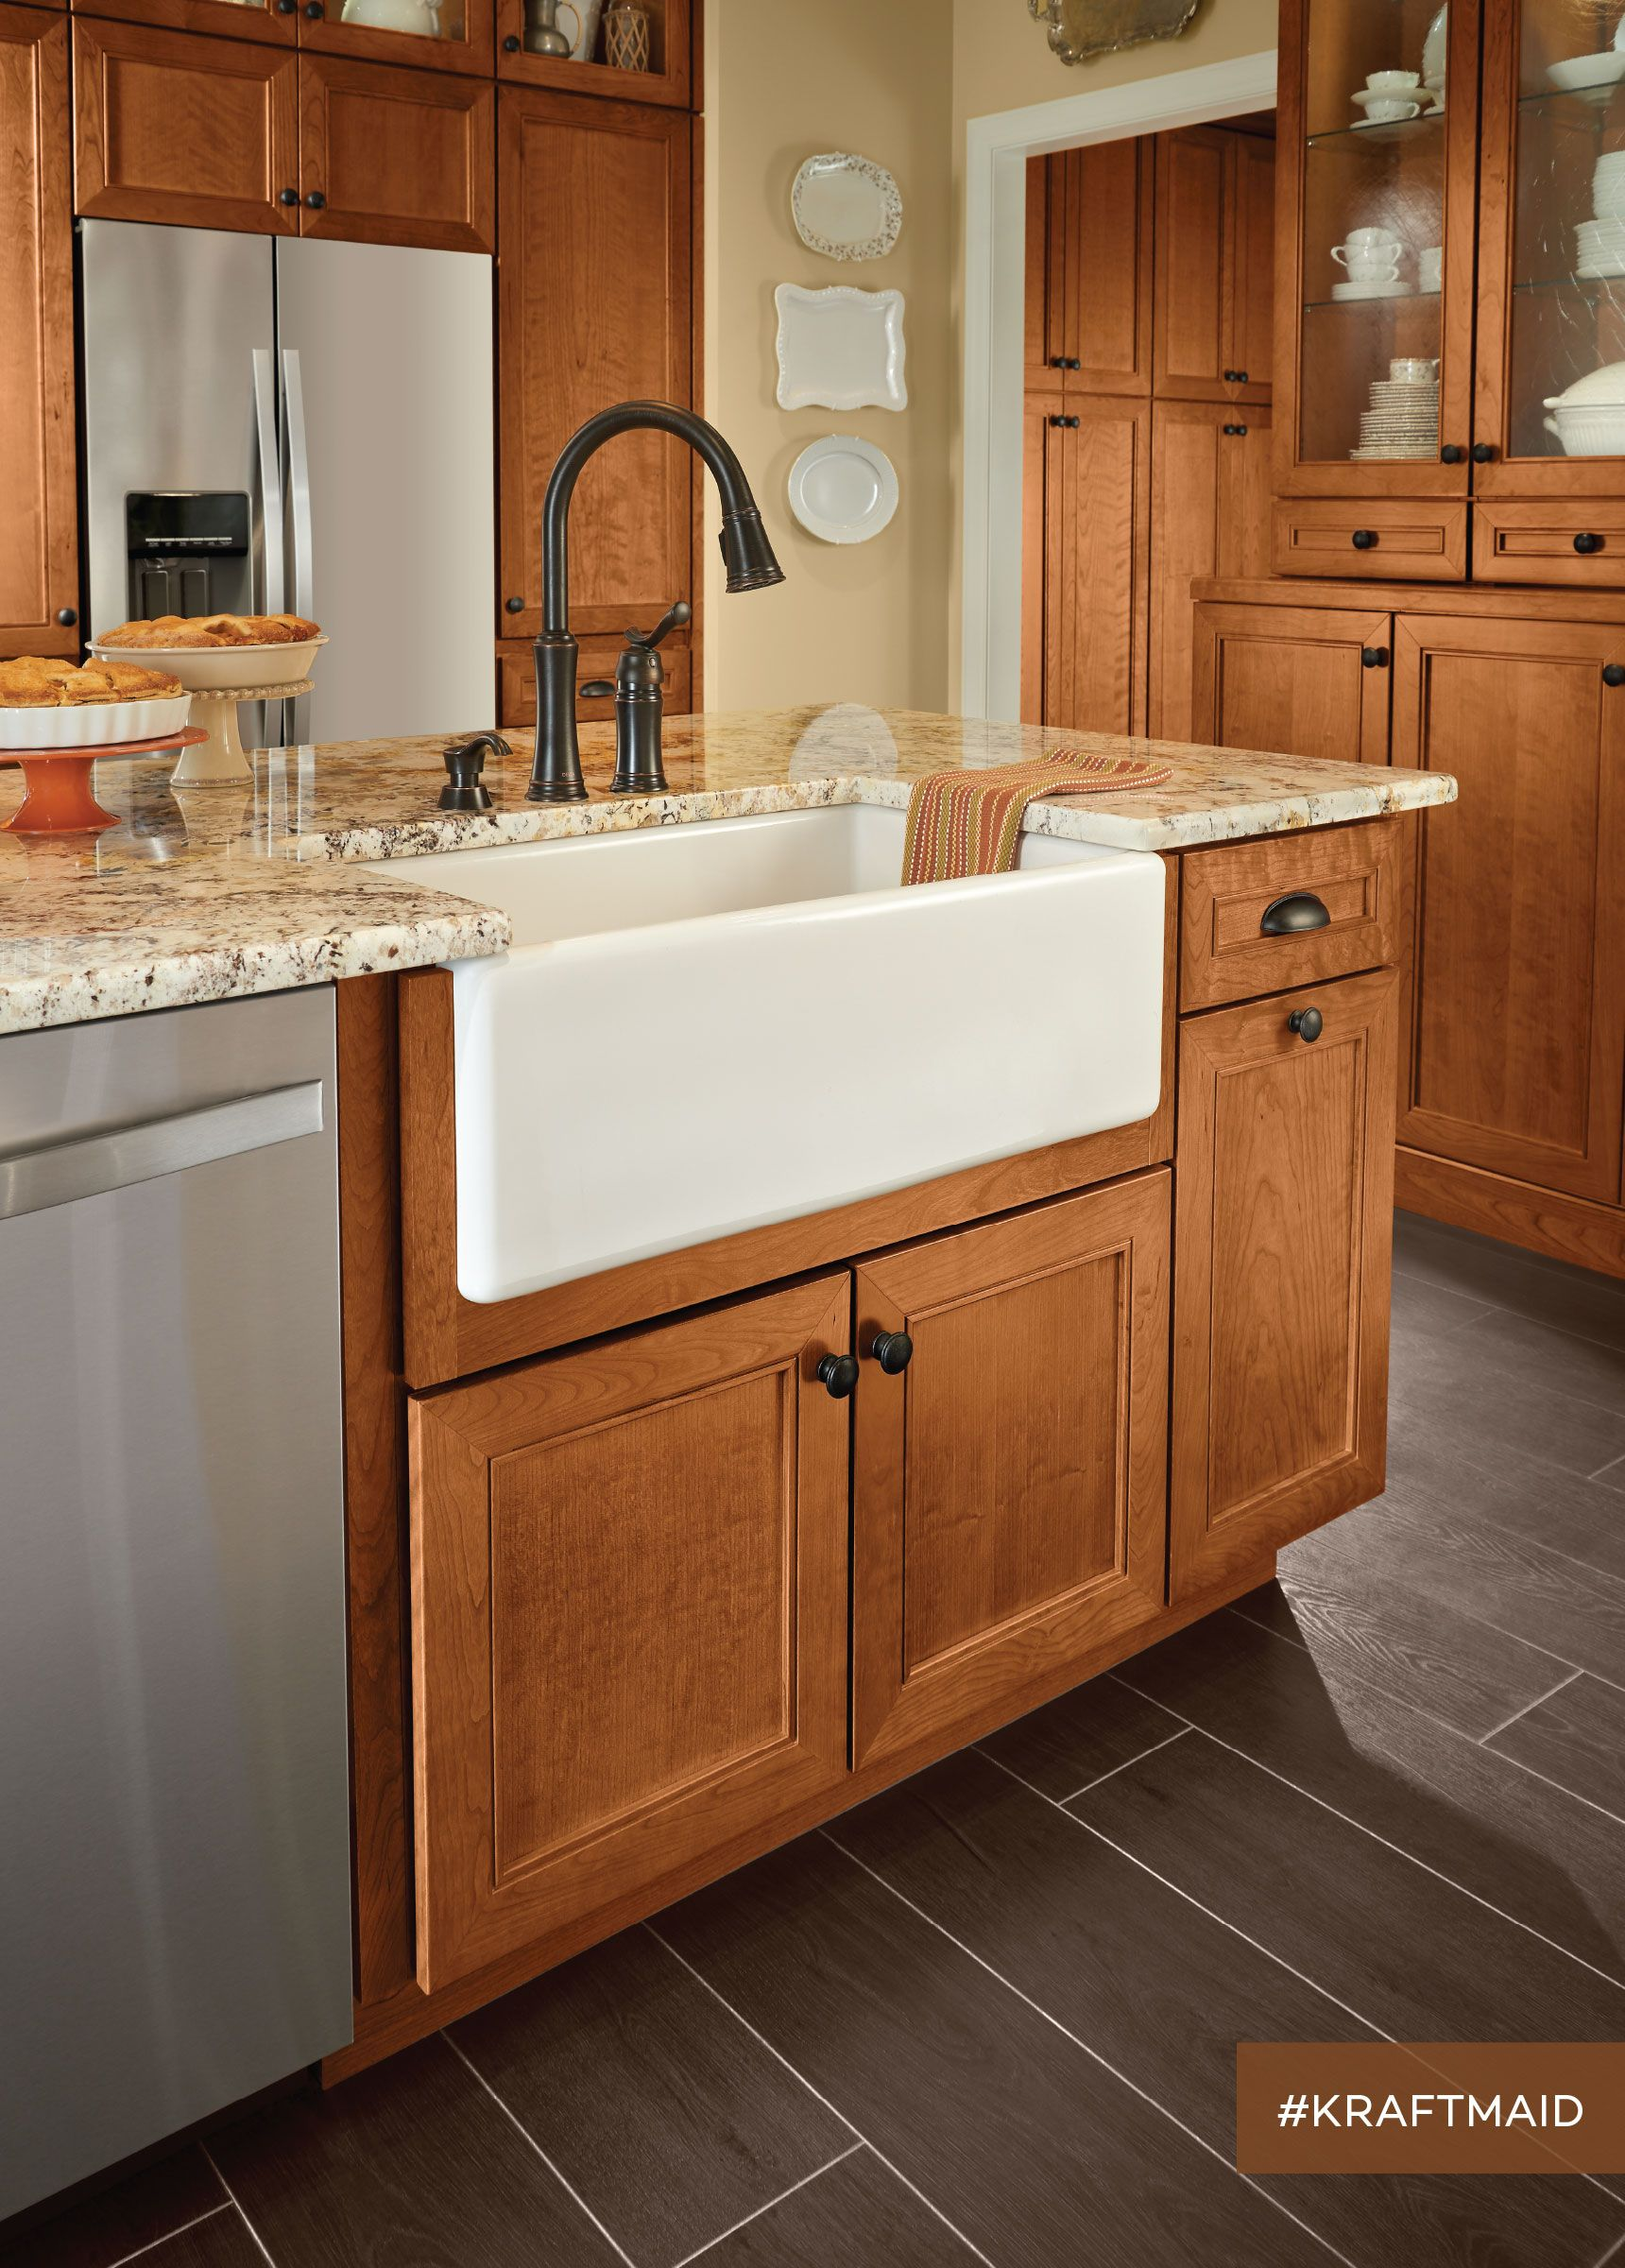 fanti blog idea kitchen inspirations new kraftmaid prices cabinet of cabinets cost perfect